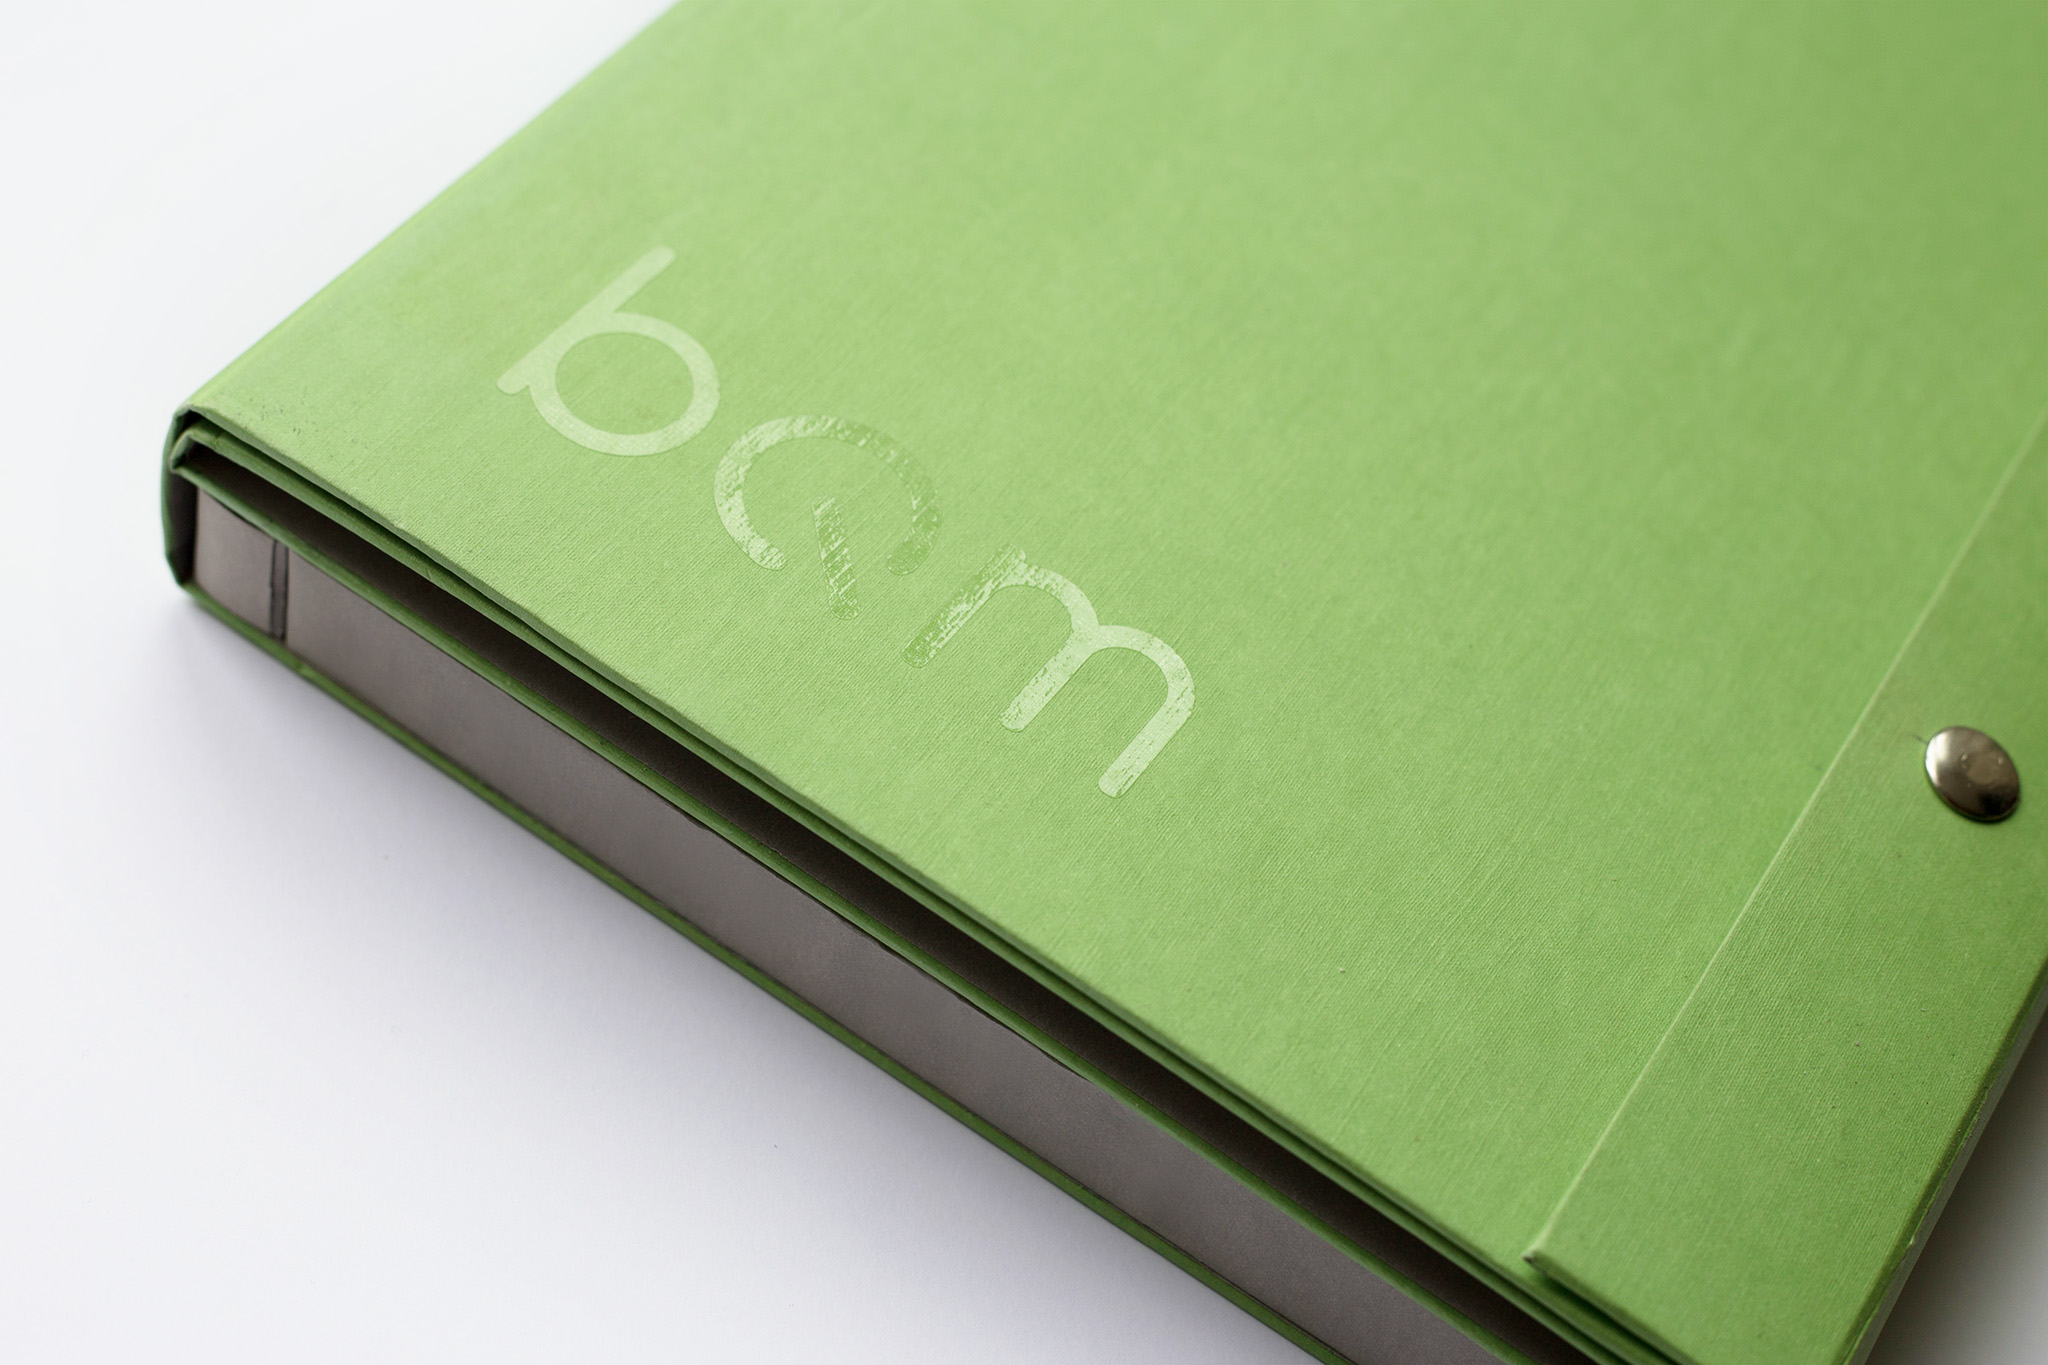 bqm-corporate-design-hannah-rauss-noe-io7